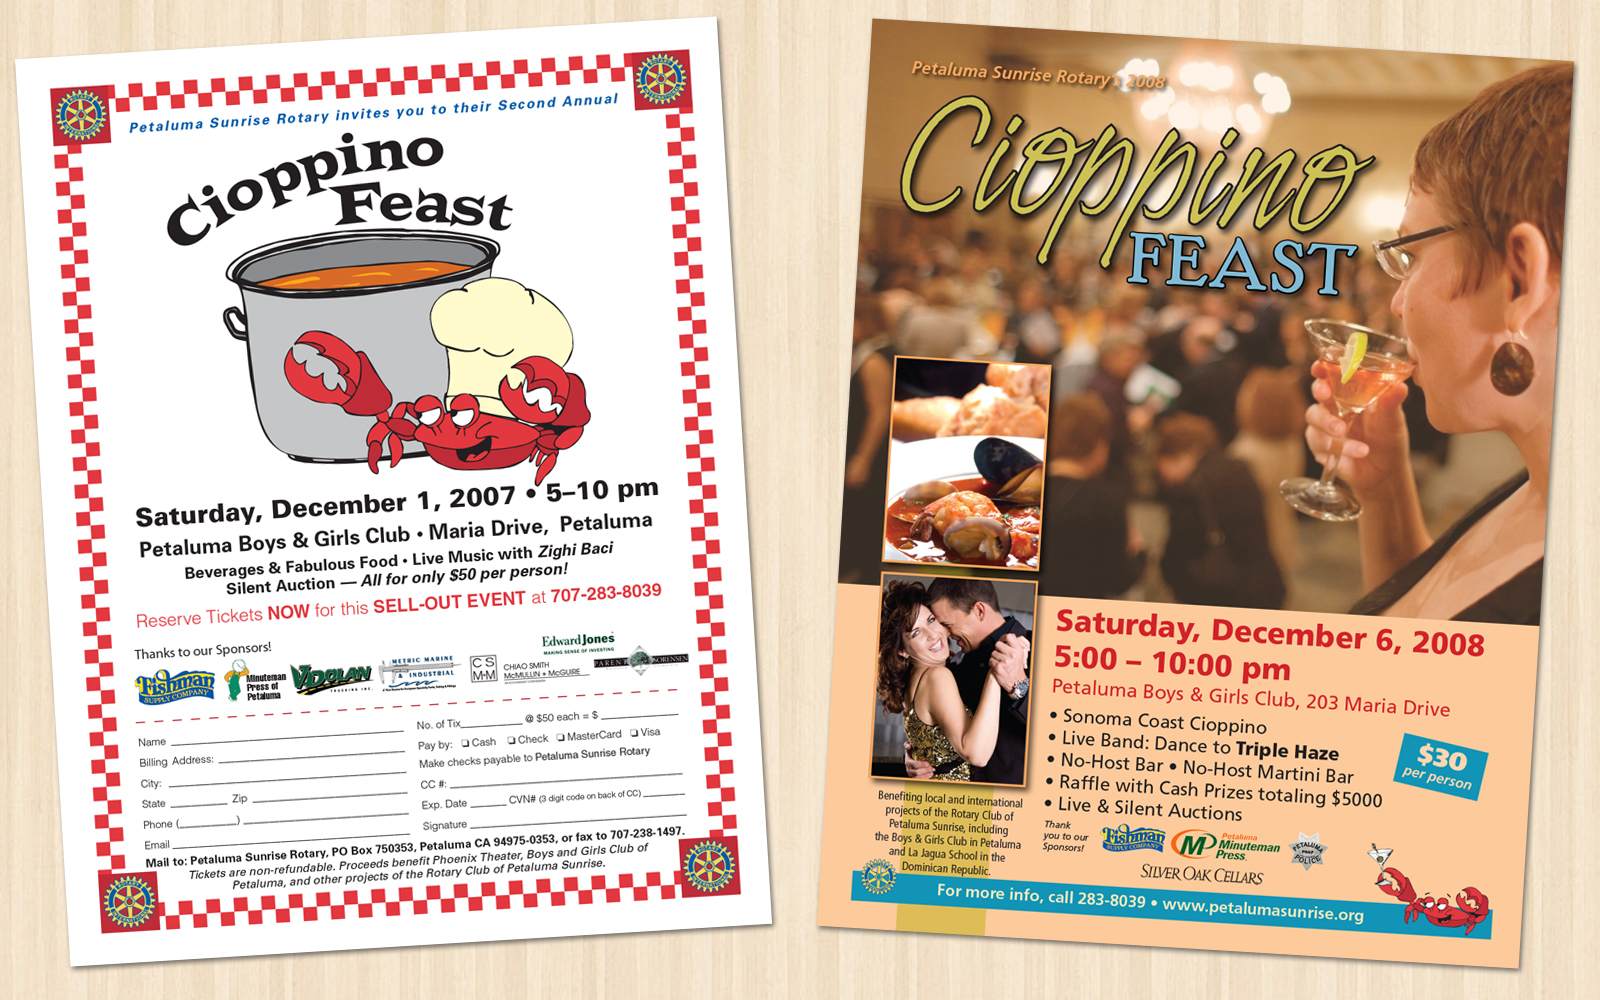 Petaluma Sunrise Rotary Cioppino Feast Flyers